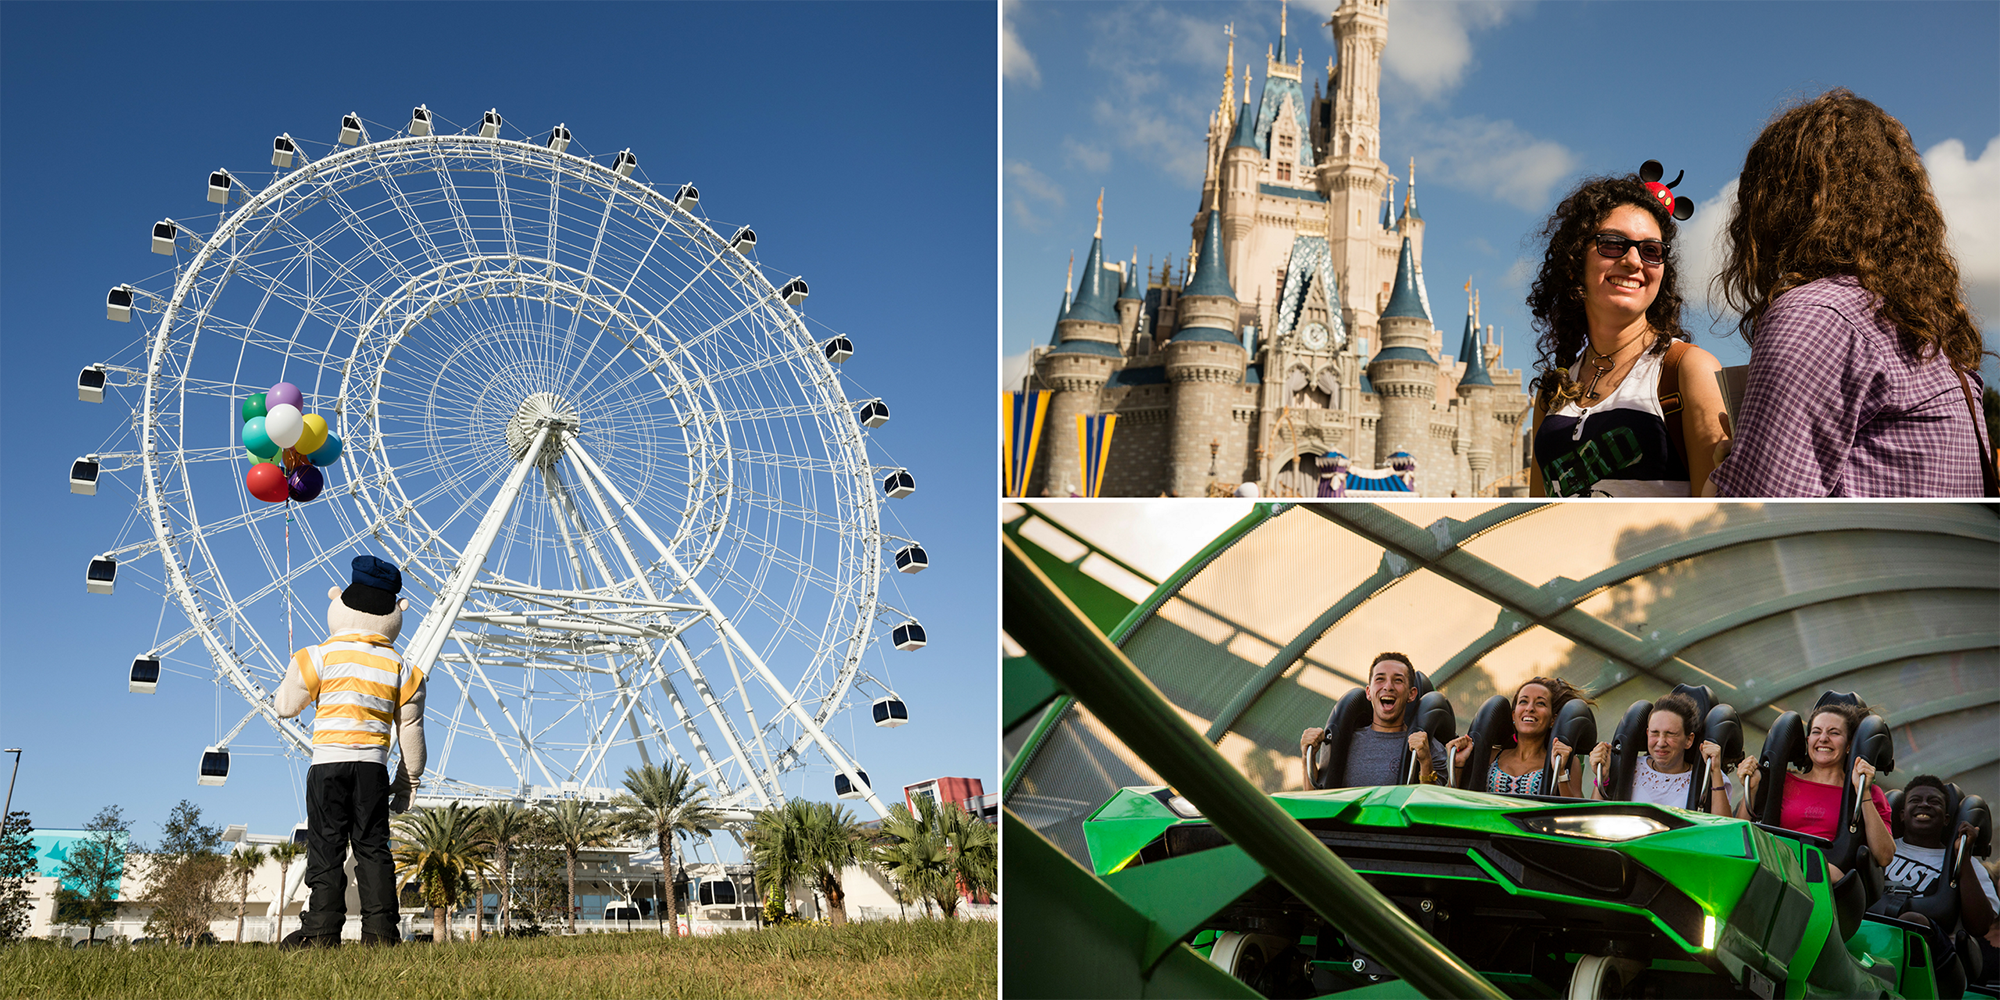 Orlando area theme parks and attractions